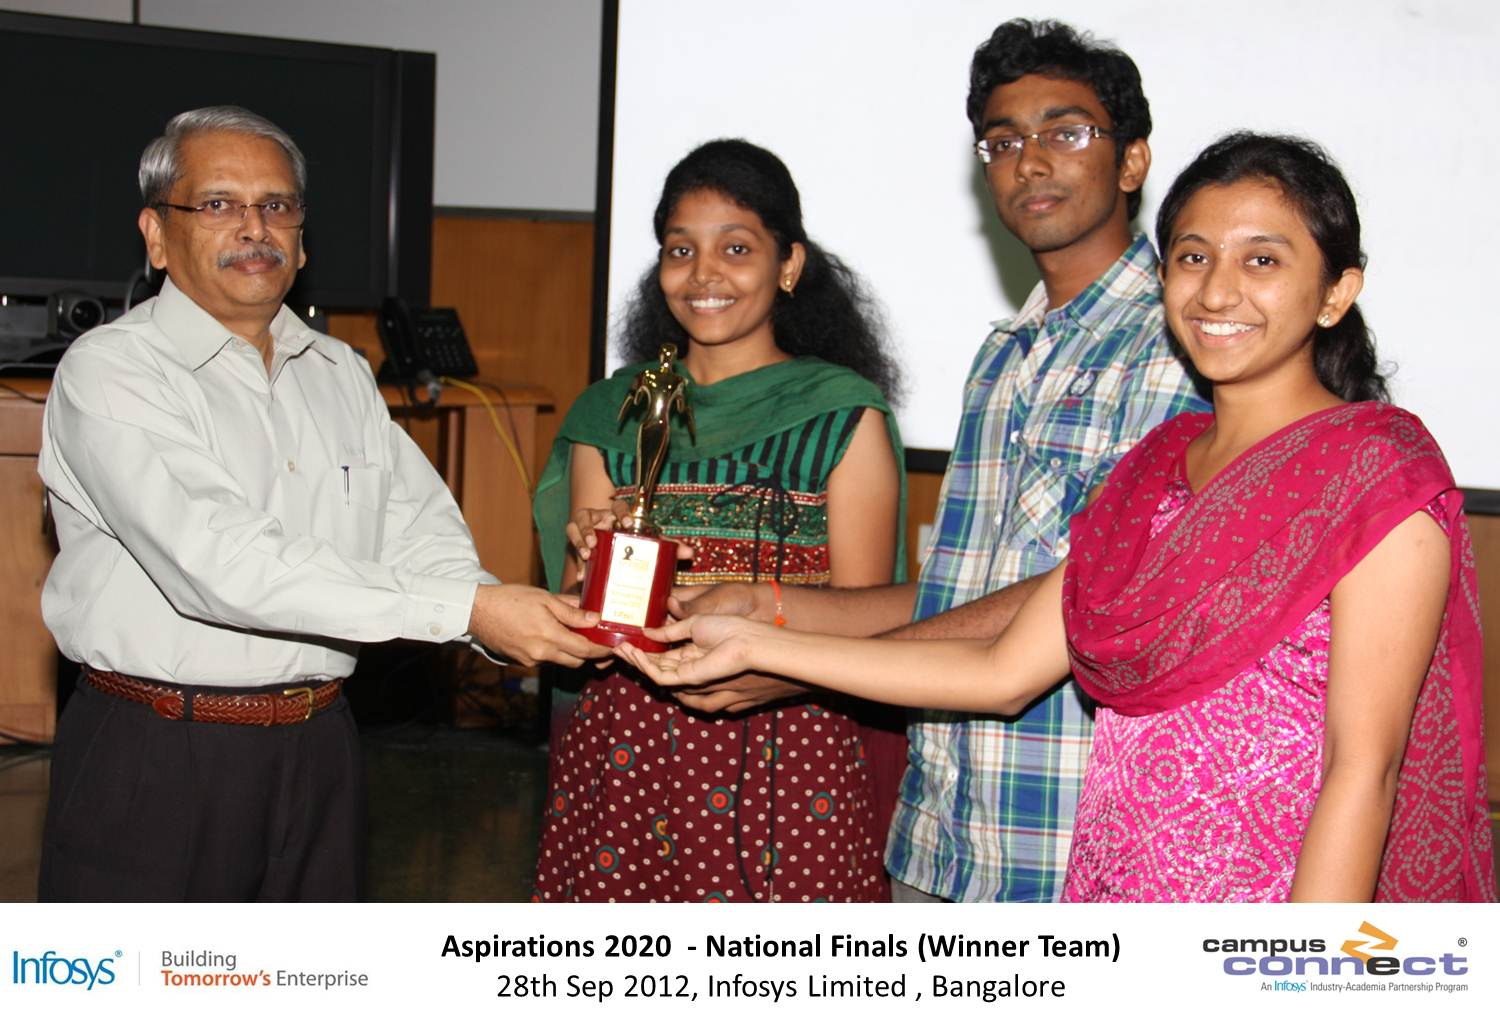 N.Anudeep , B.Sai Ishawarya, K.Sindhura from CSE were declared as National Championships in Aspirations 2020, Coding Contest from Infosys